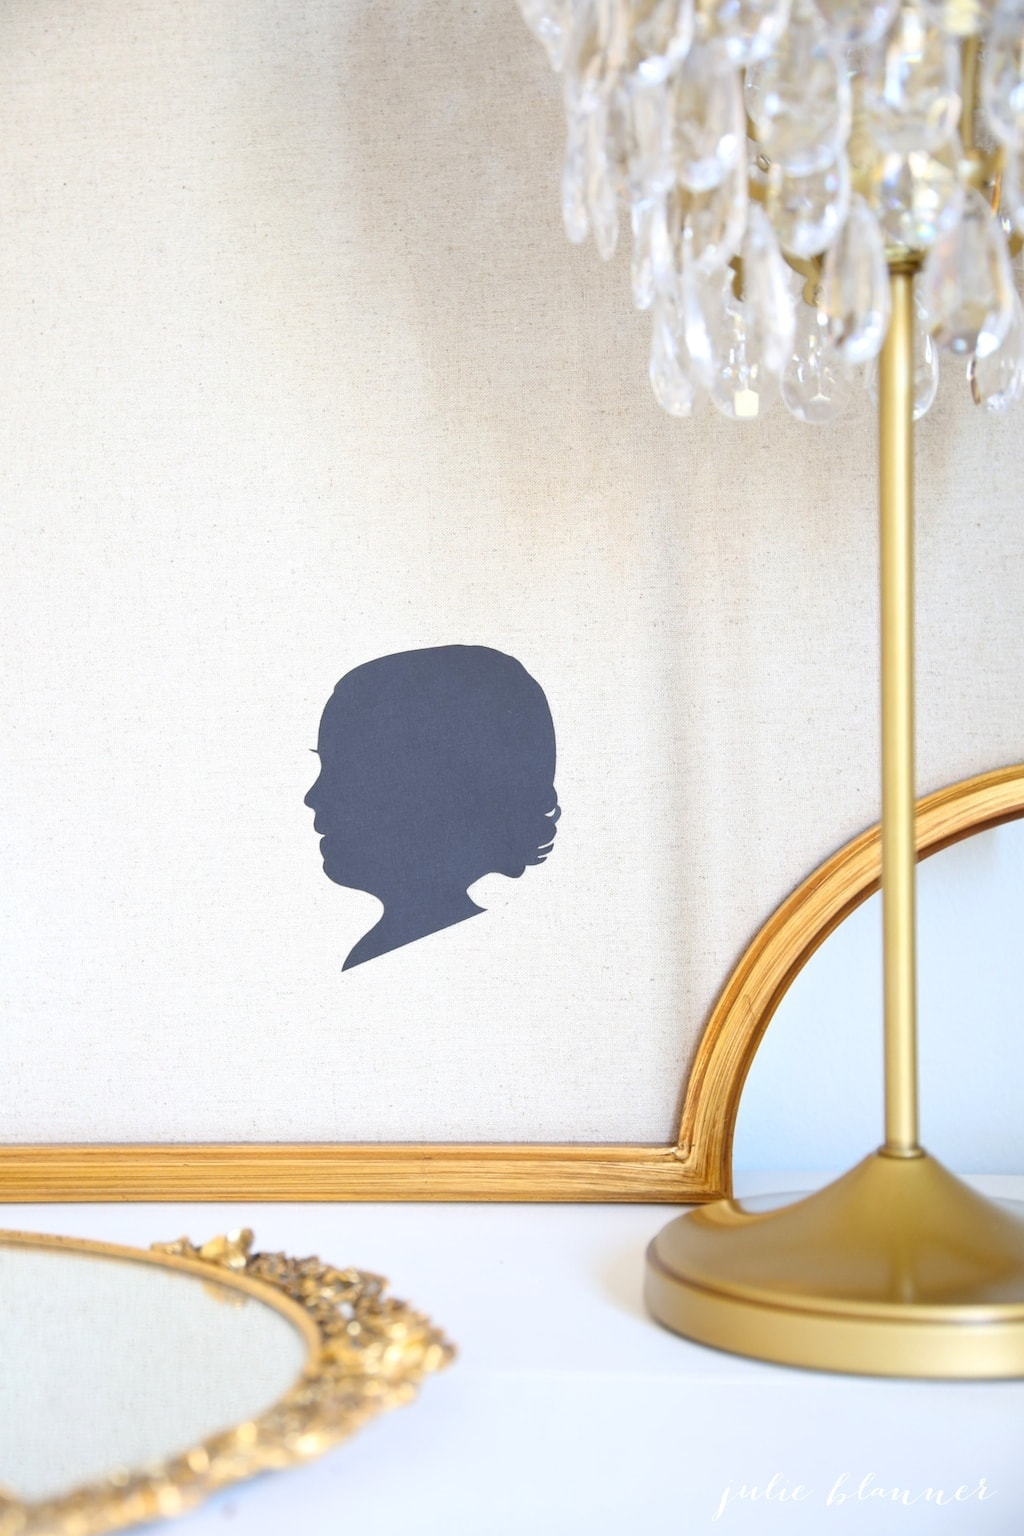 Make beautiful silhouette art with this easy step-by-step tutorial